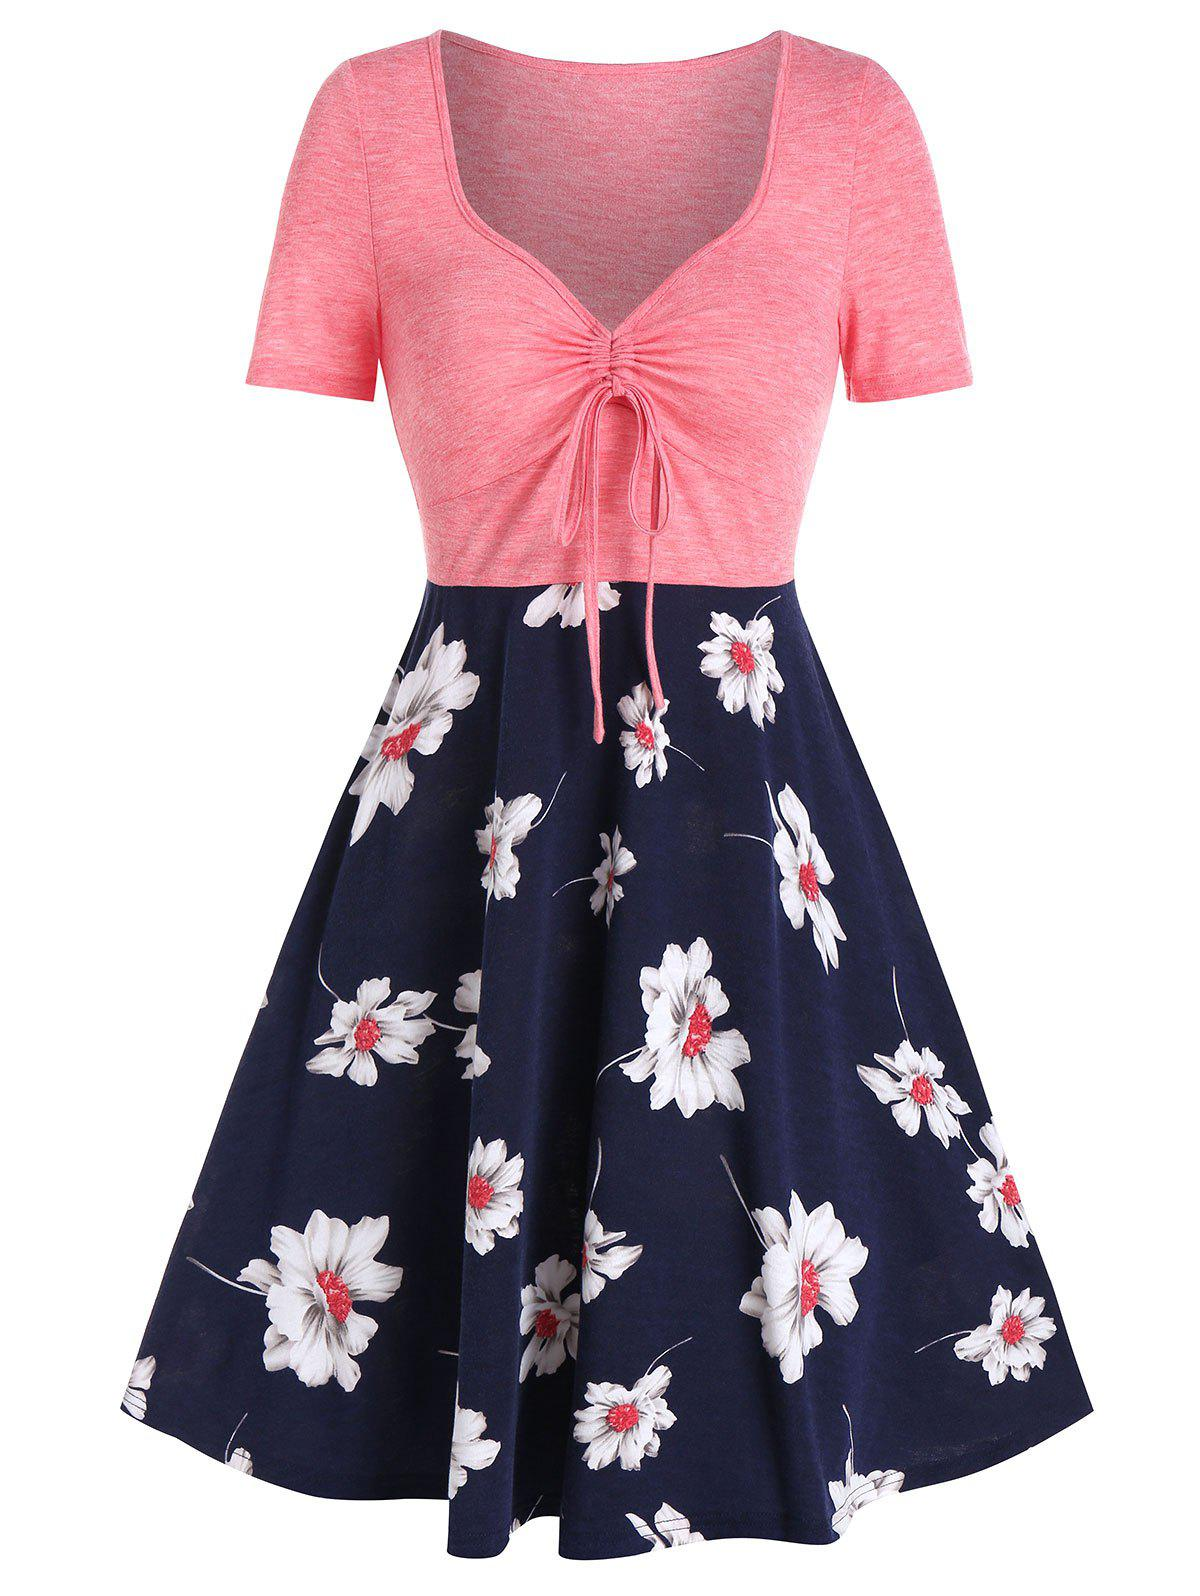 Shops Flower Print Drawstring Fit And Flare Dress